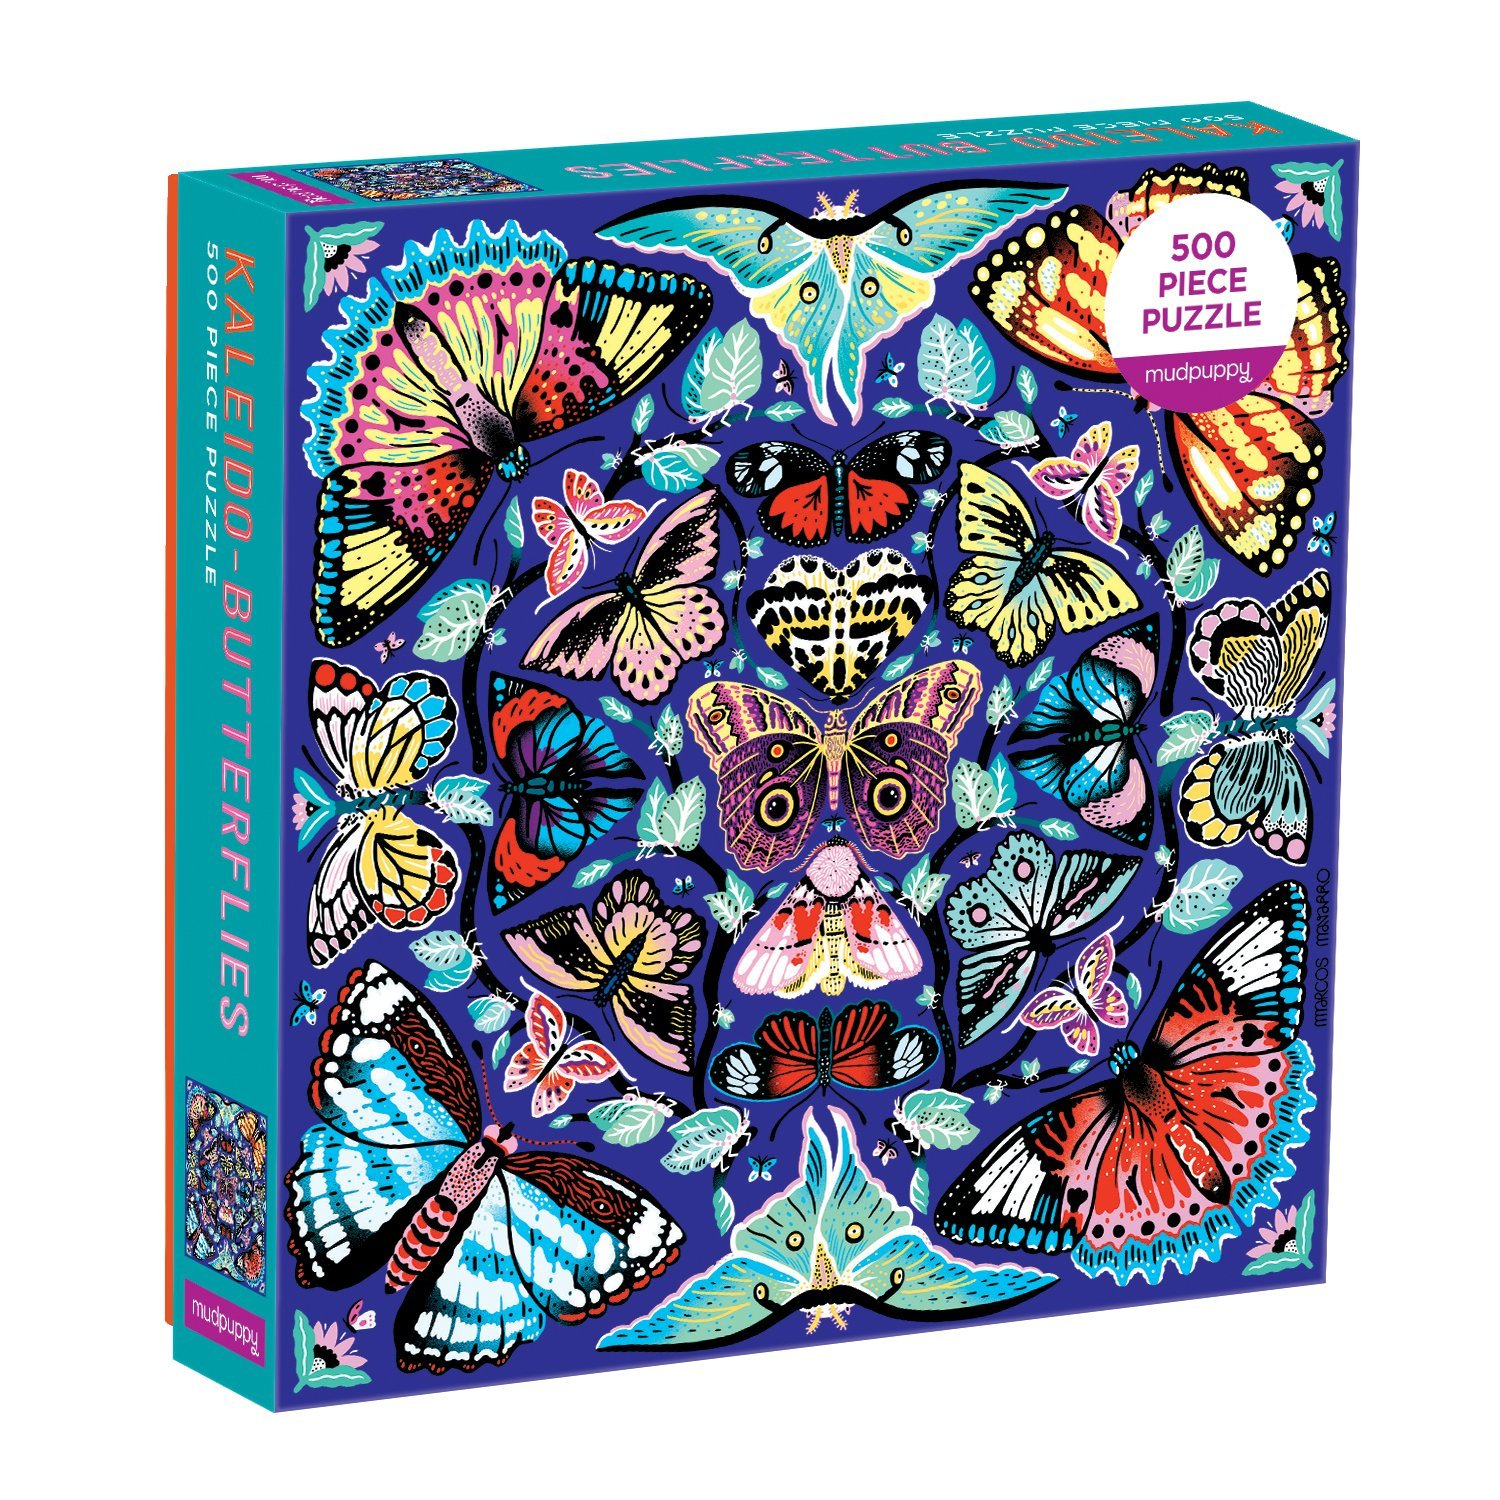 Kaleido Butterflies 500pc Family Jigsaw Puzzle by Mudpuppy